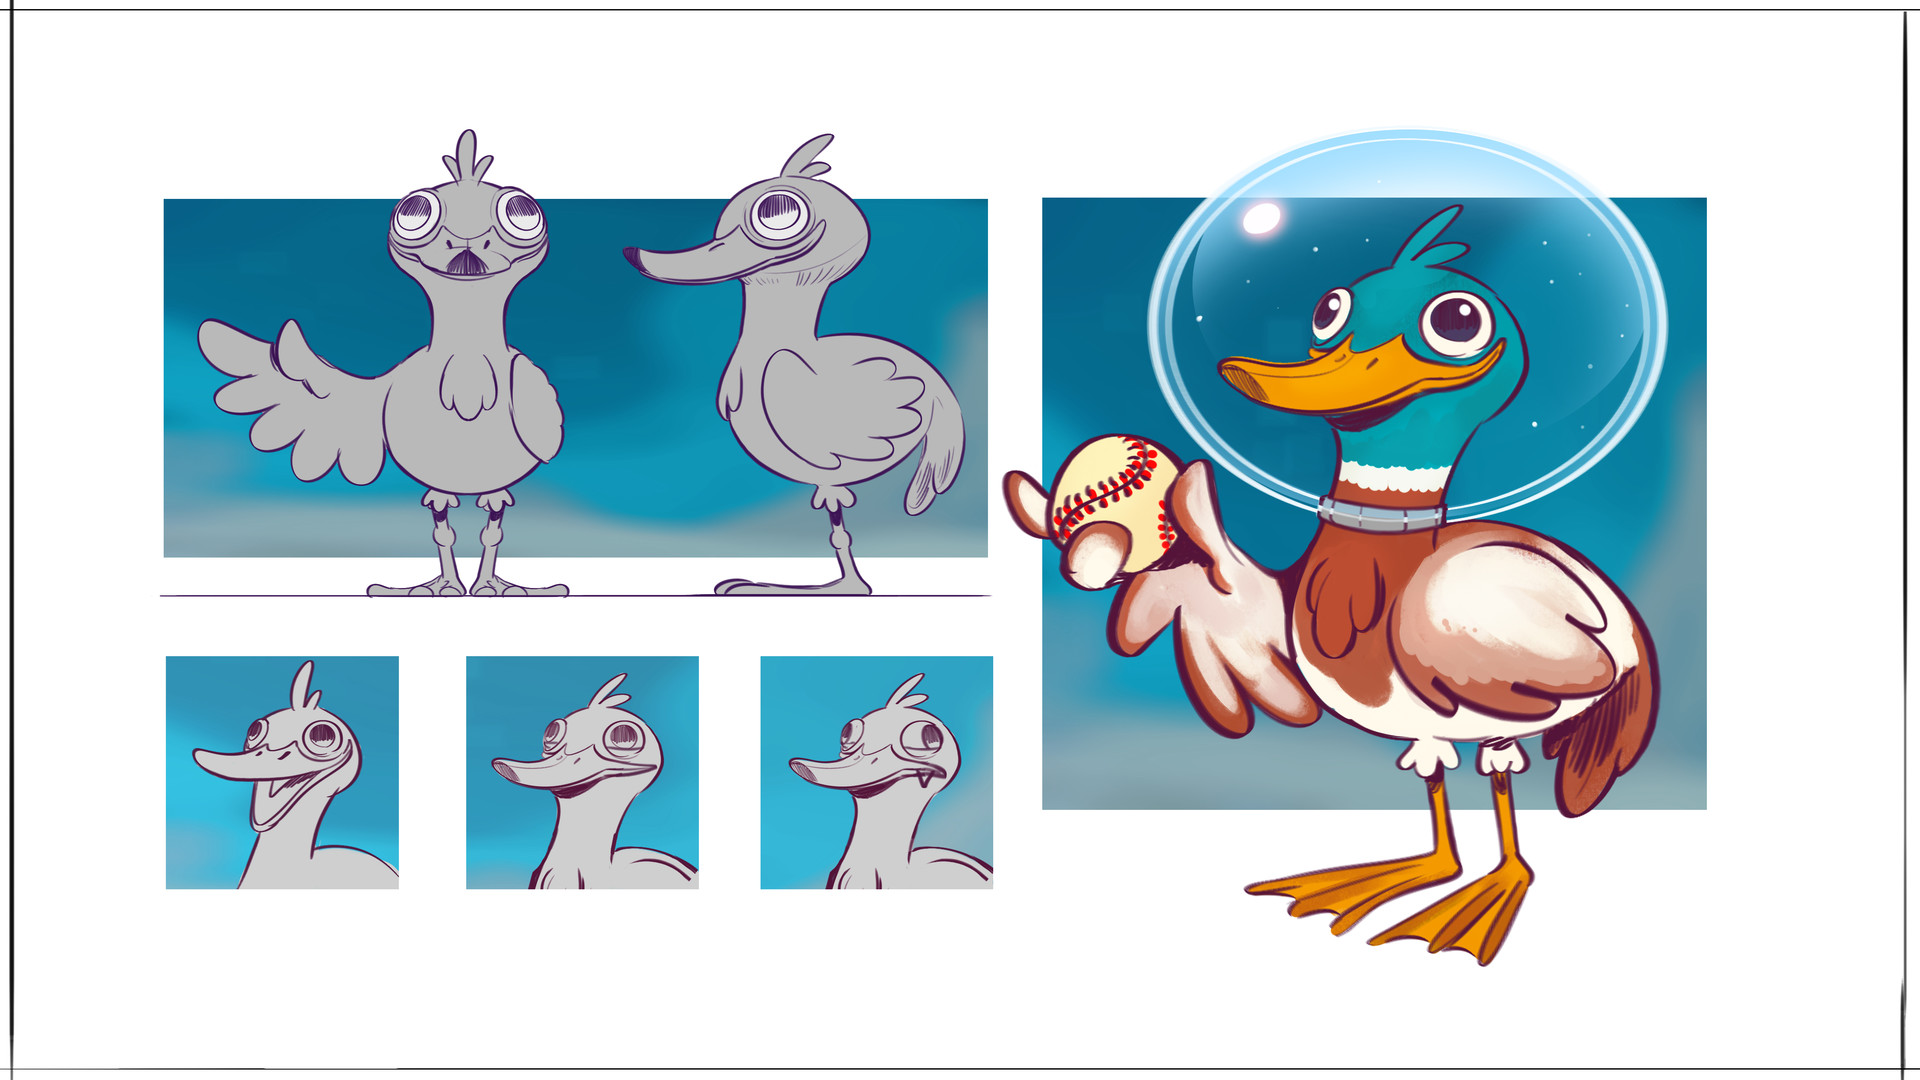 Francesco mazza francesco mazza bongo duck character sheet v01